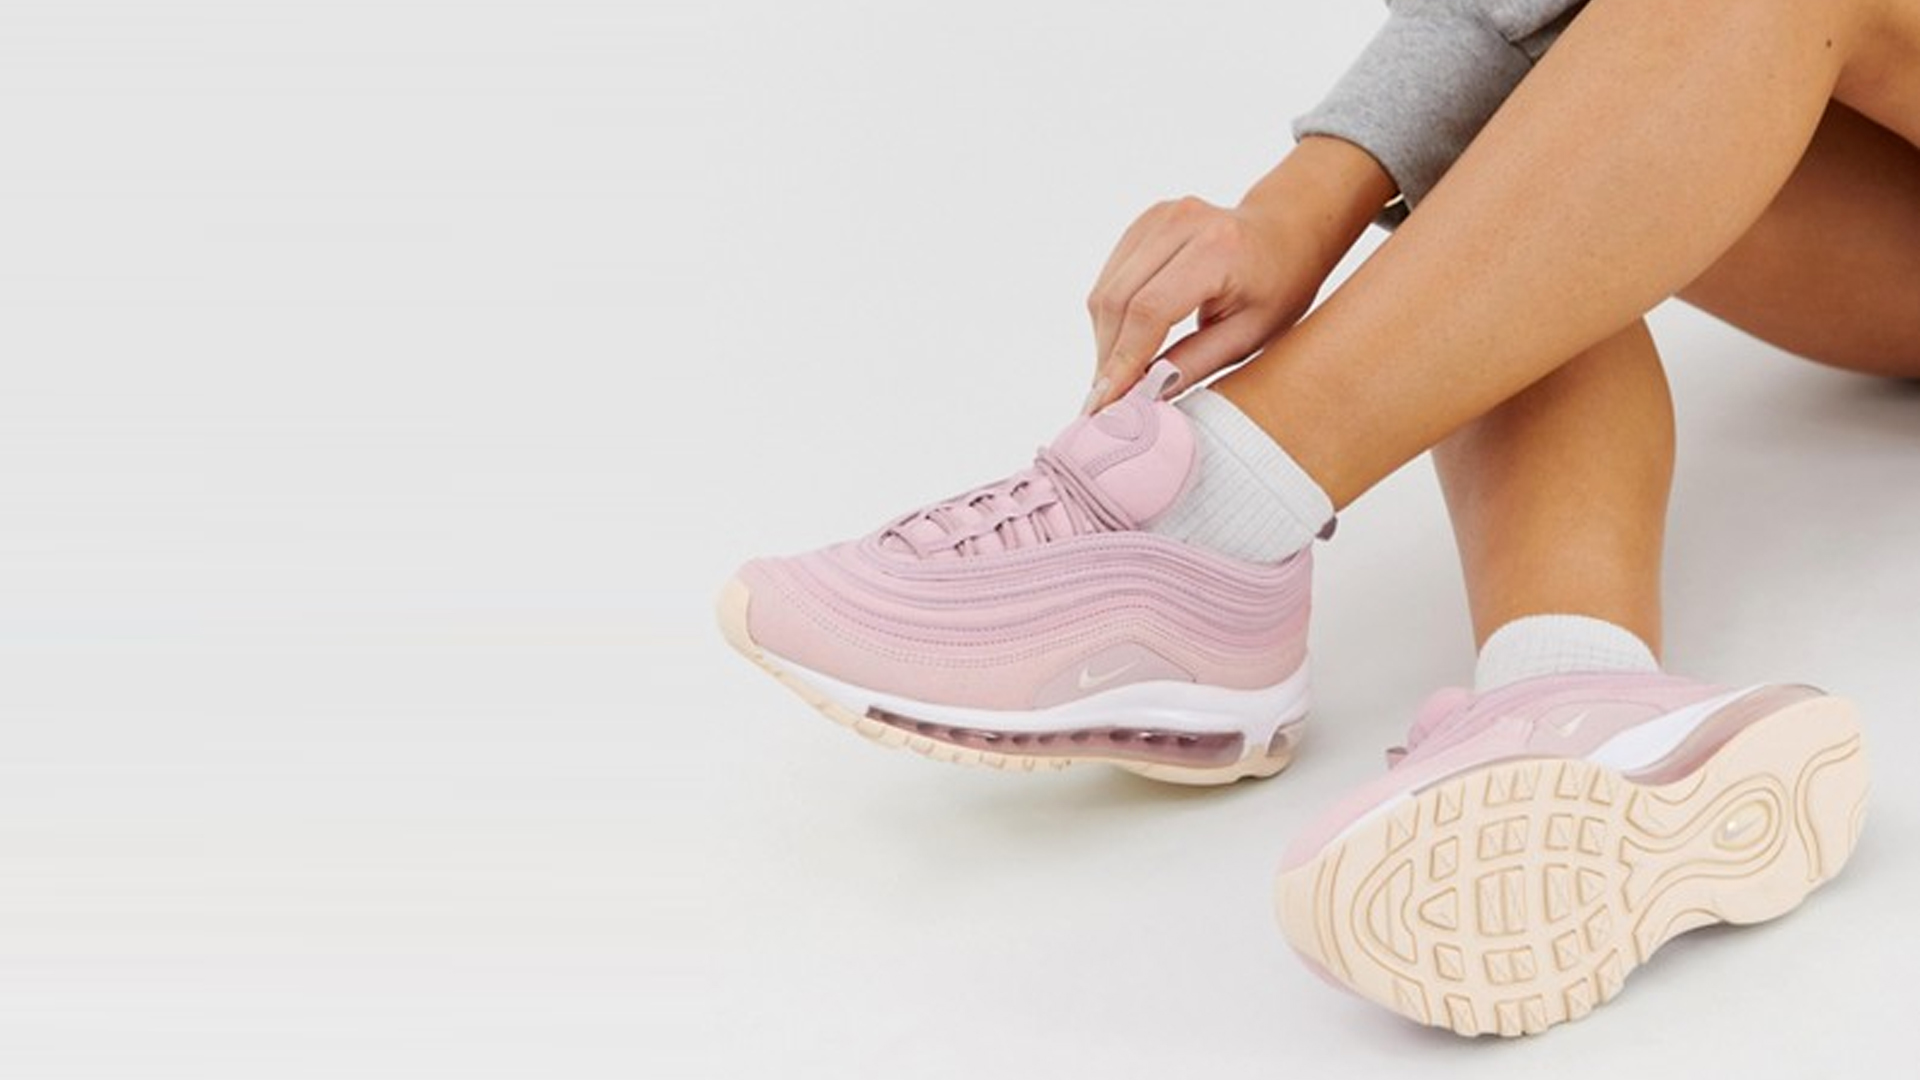 pretty nice 4e29c 93072 Nikes Pretty In Pink Air Max 97 Is Back With A Sweet Update